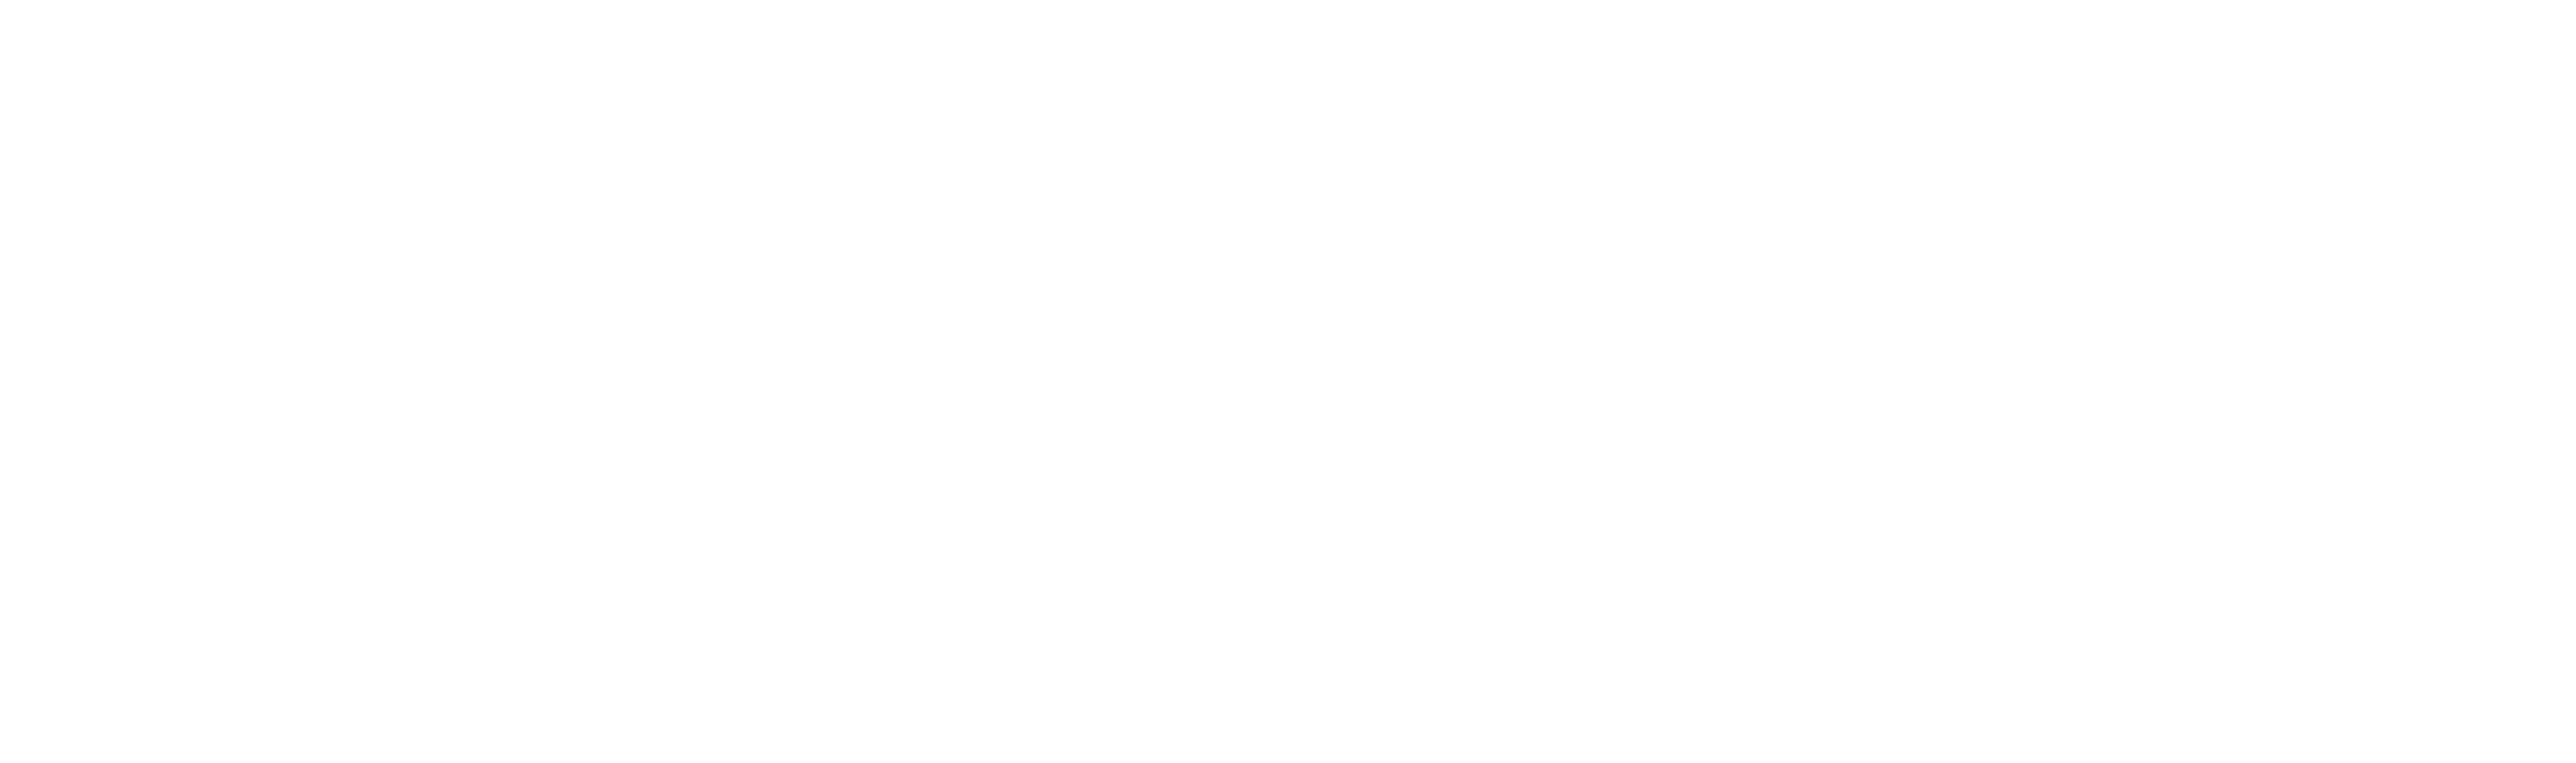 Suffolk Welding & Fabrication